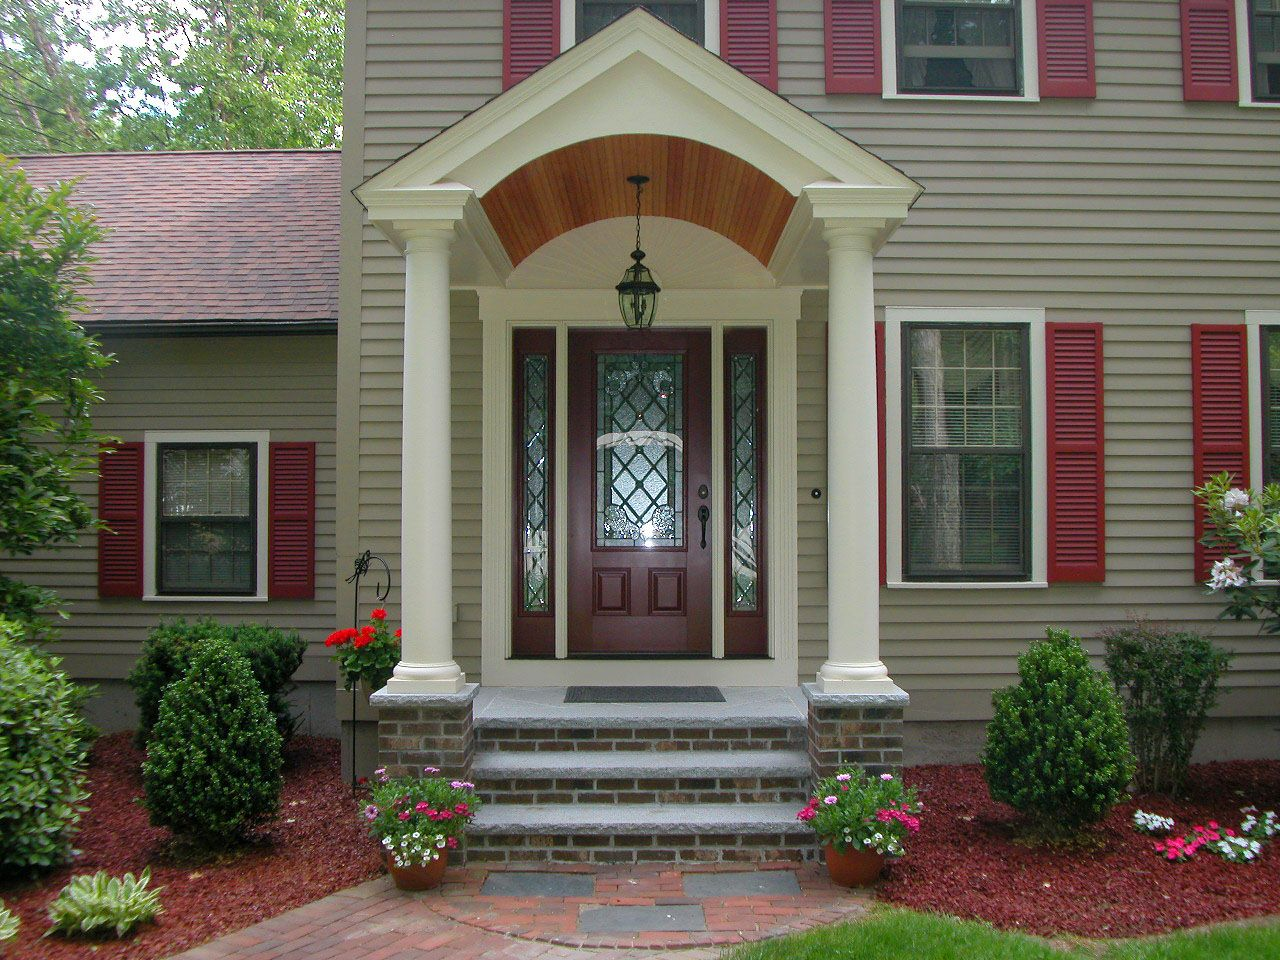 Porch Design Ideas porch styles 6 photos Colonial Porch Over Front Door Front Porch Ideas Furniture Fascinating Front Porch Design Ideas